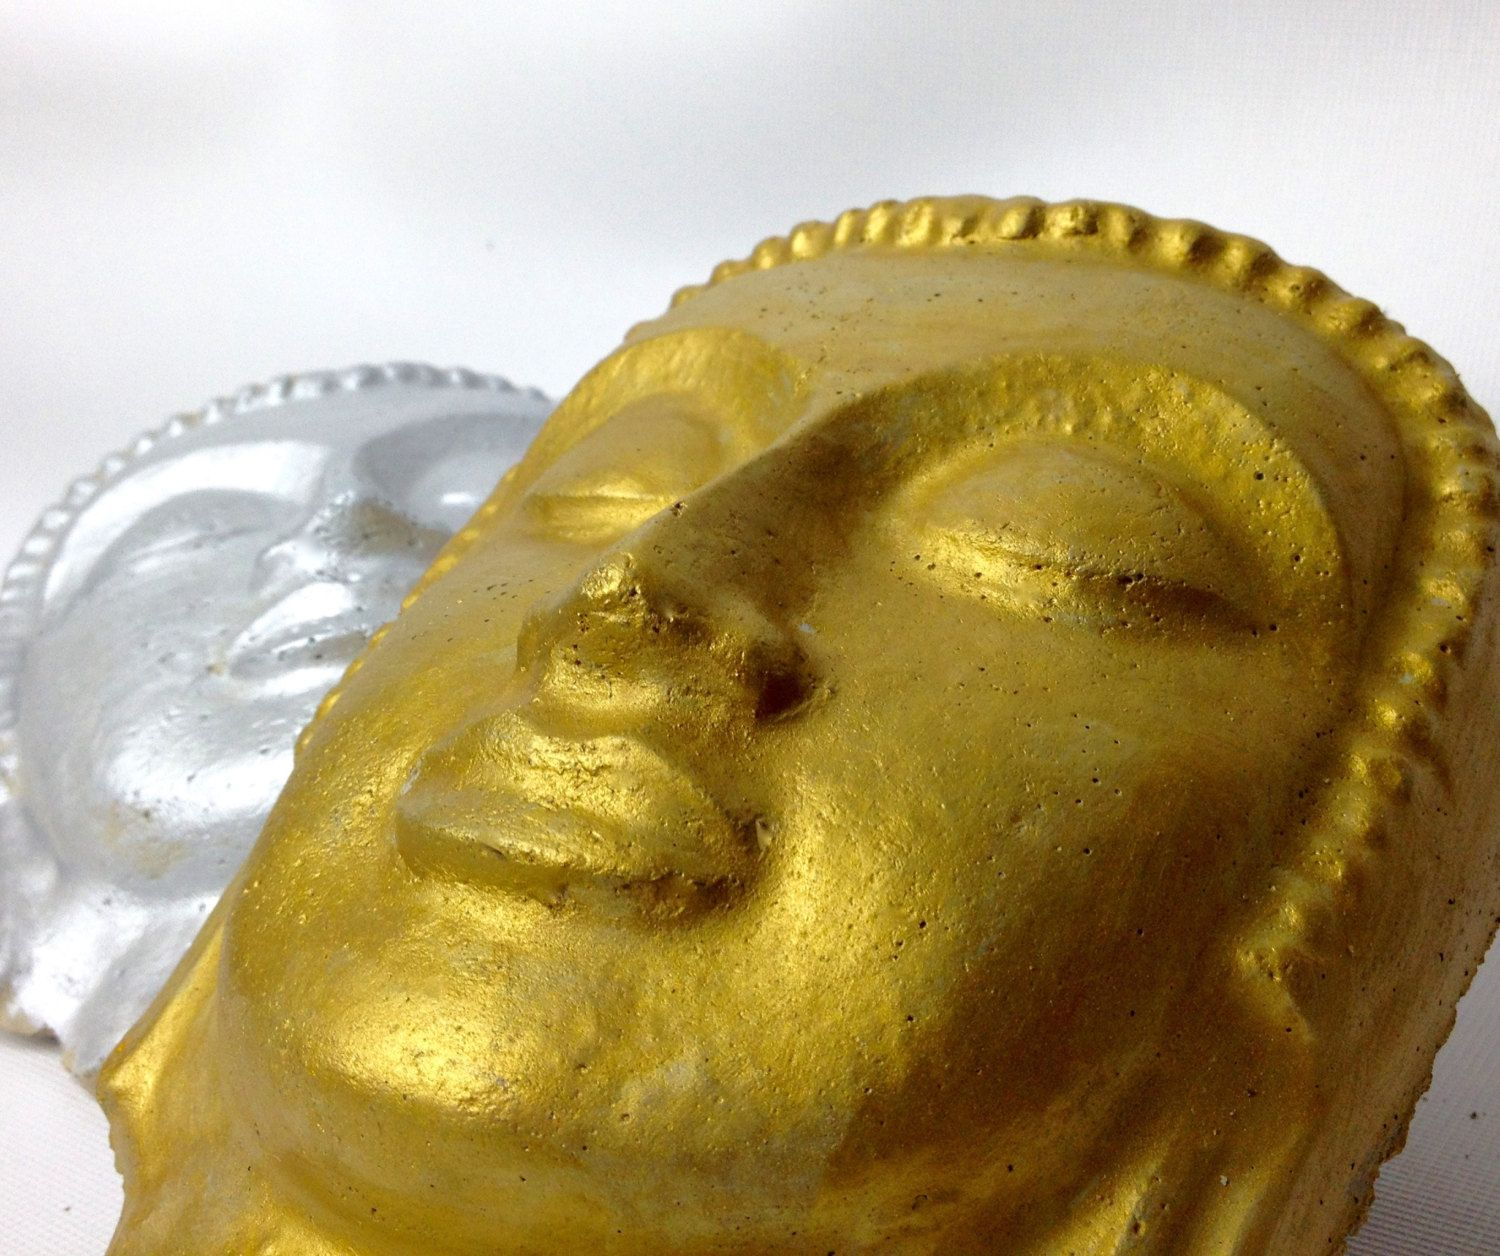 Concrete Buddha Head, Gold/silver Painted Buddha Face, Cement Garden ...